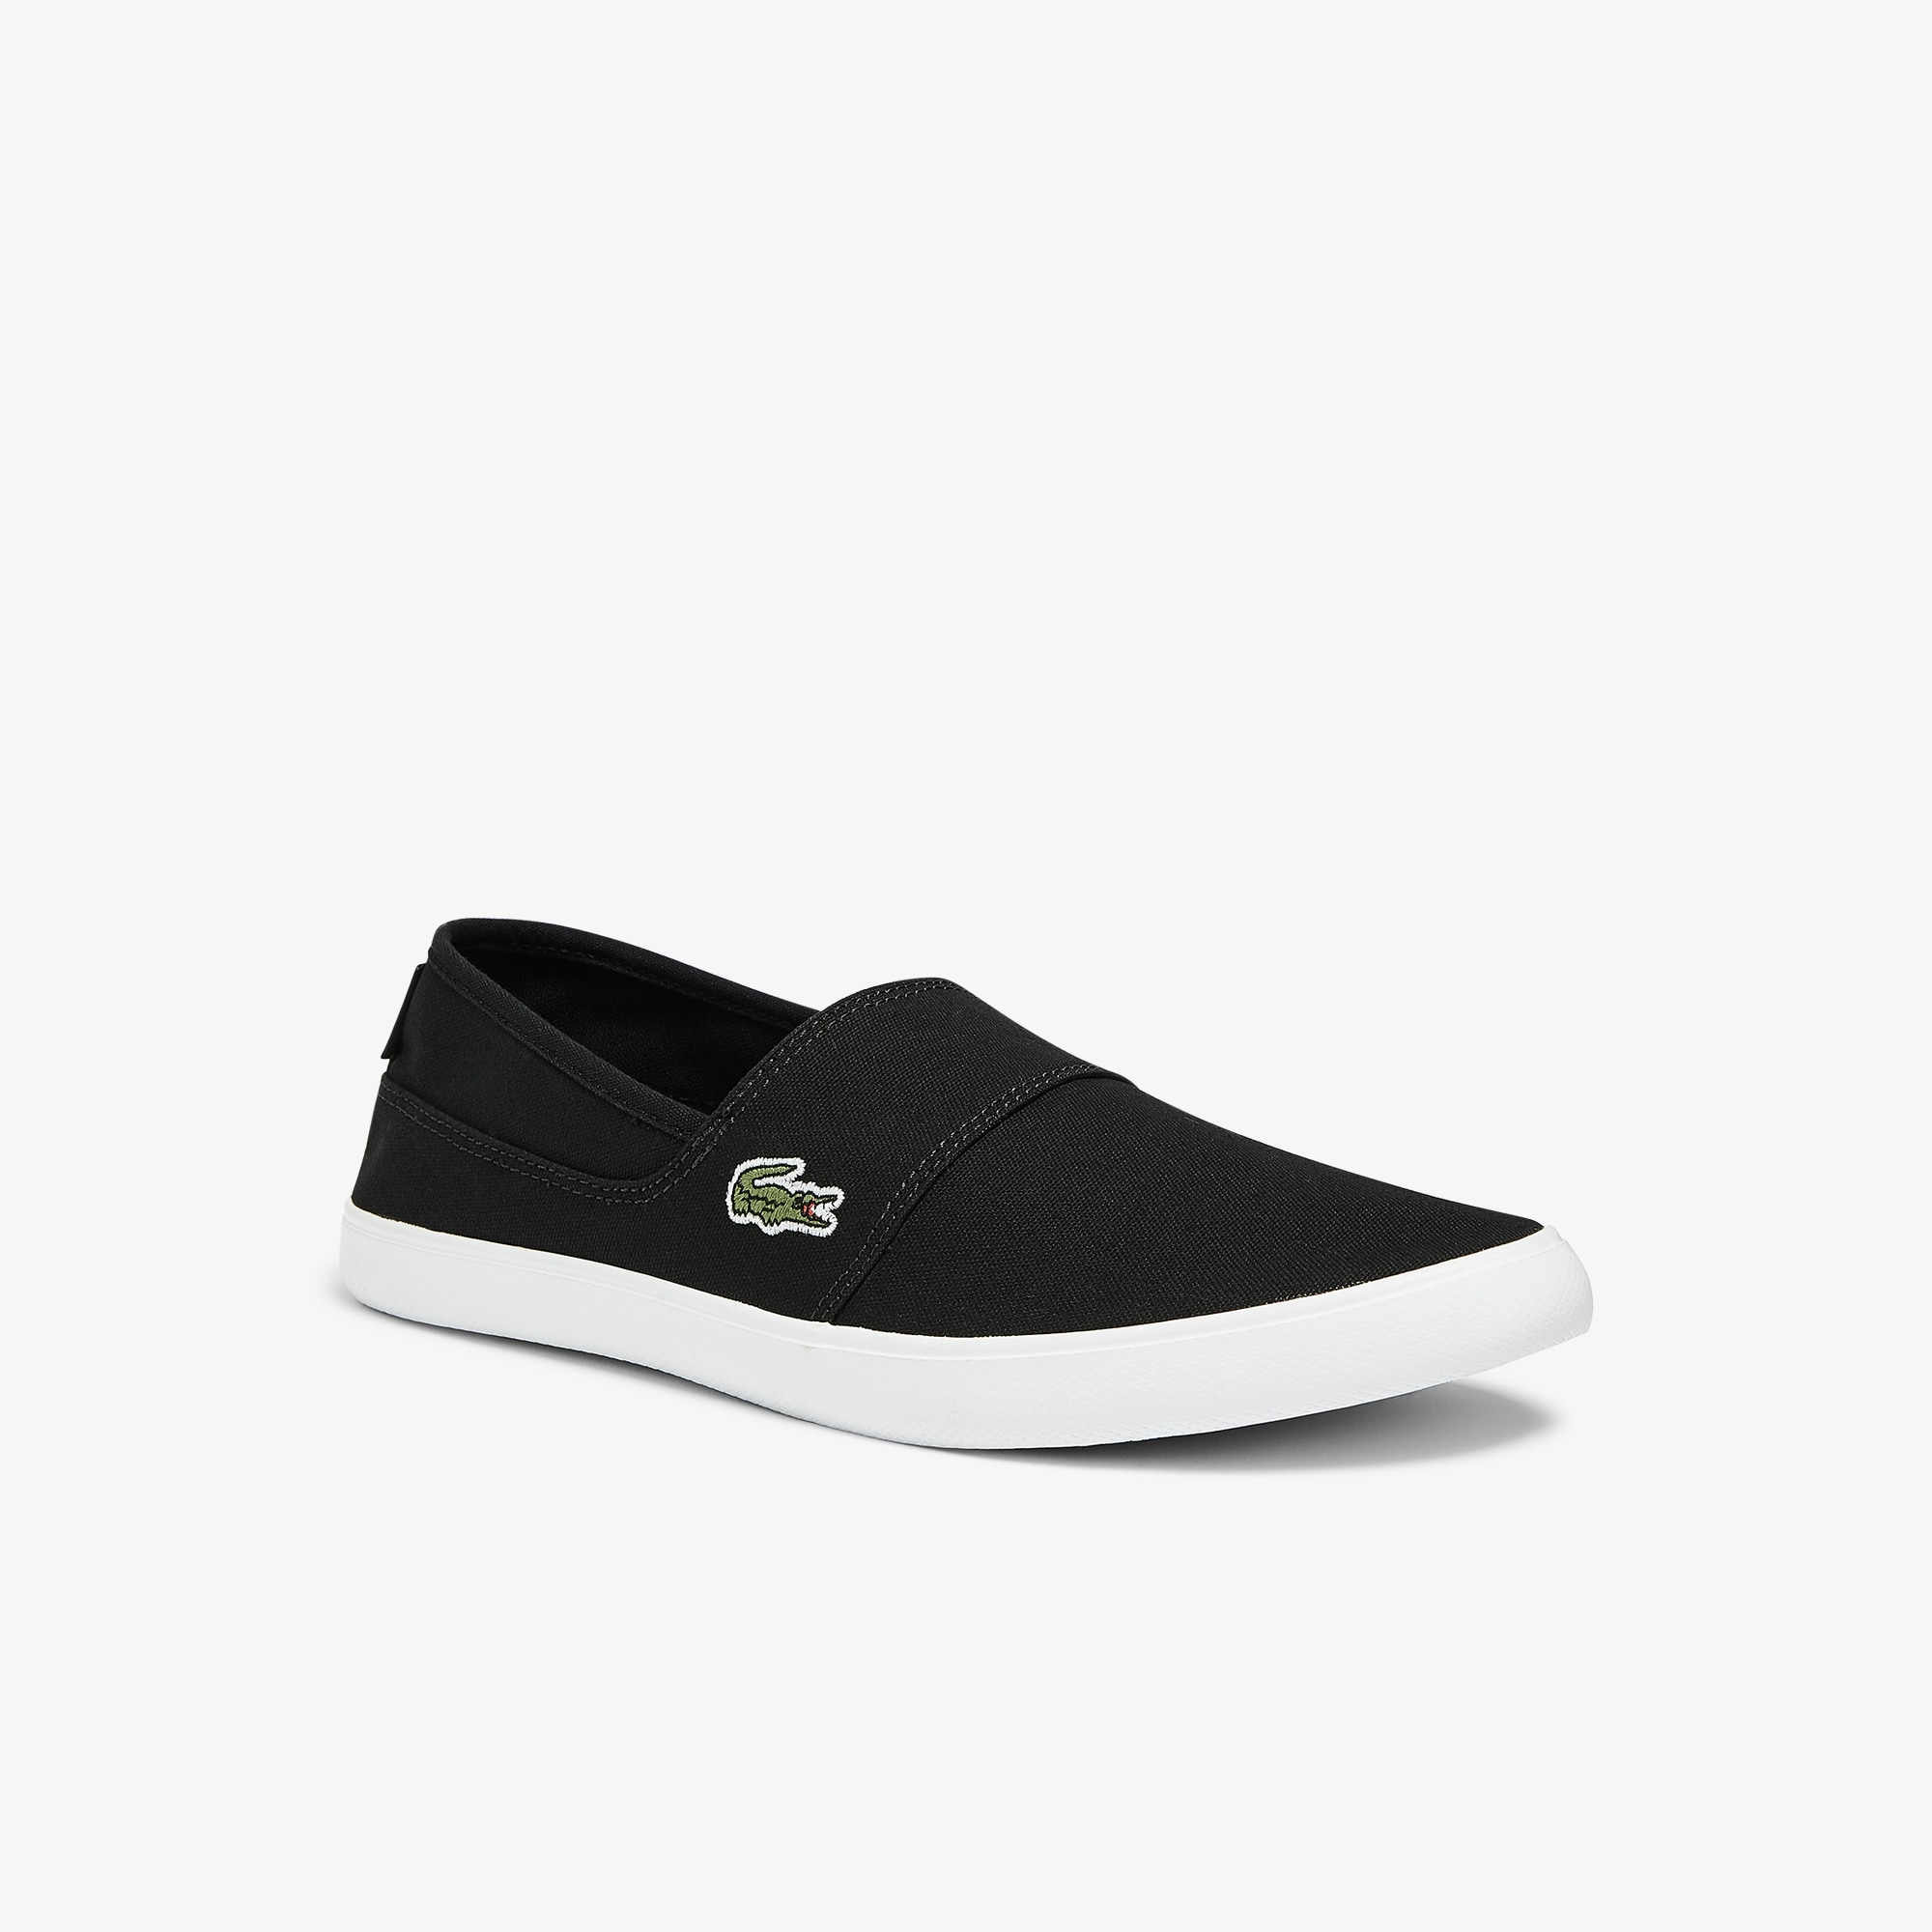 Herren-Slipper MARICE aus Canvas